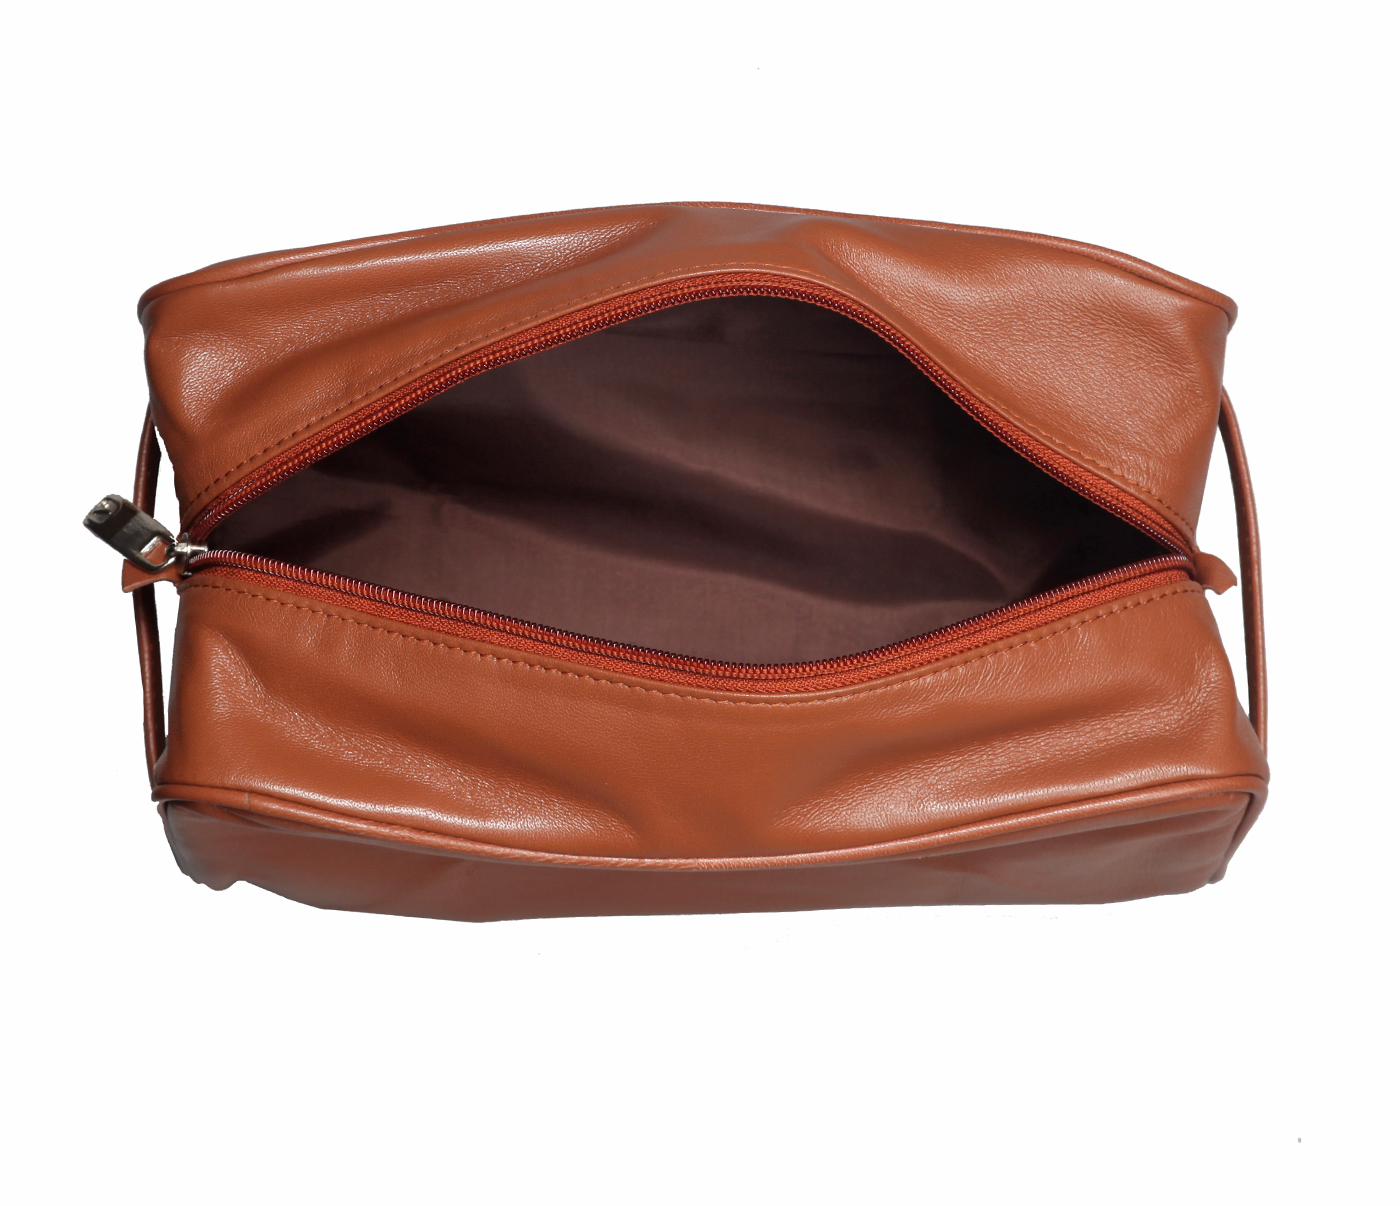 SC2--Unisex Wash & Toiletry travel Bag in Genuine Leather - Tan